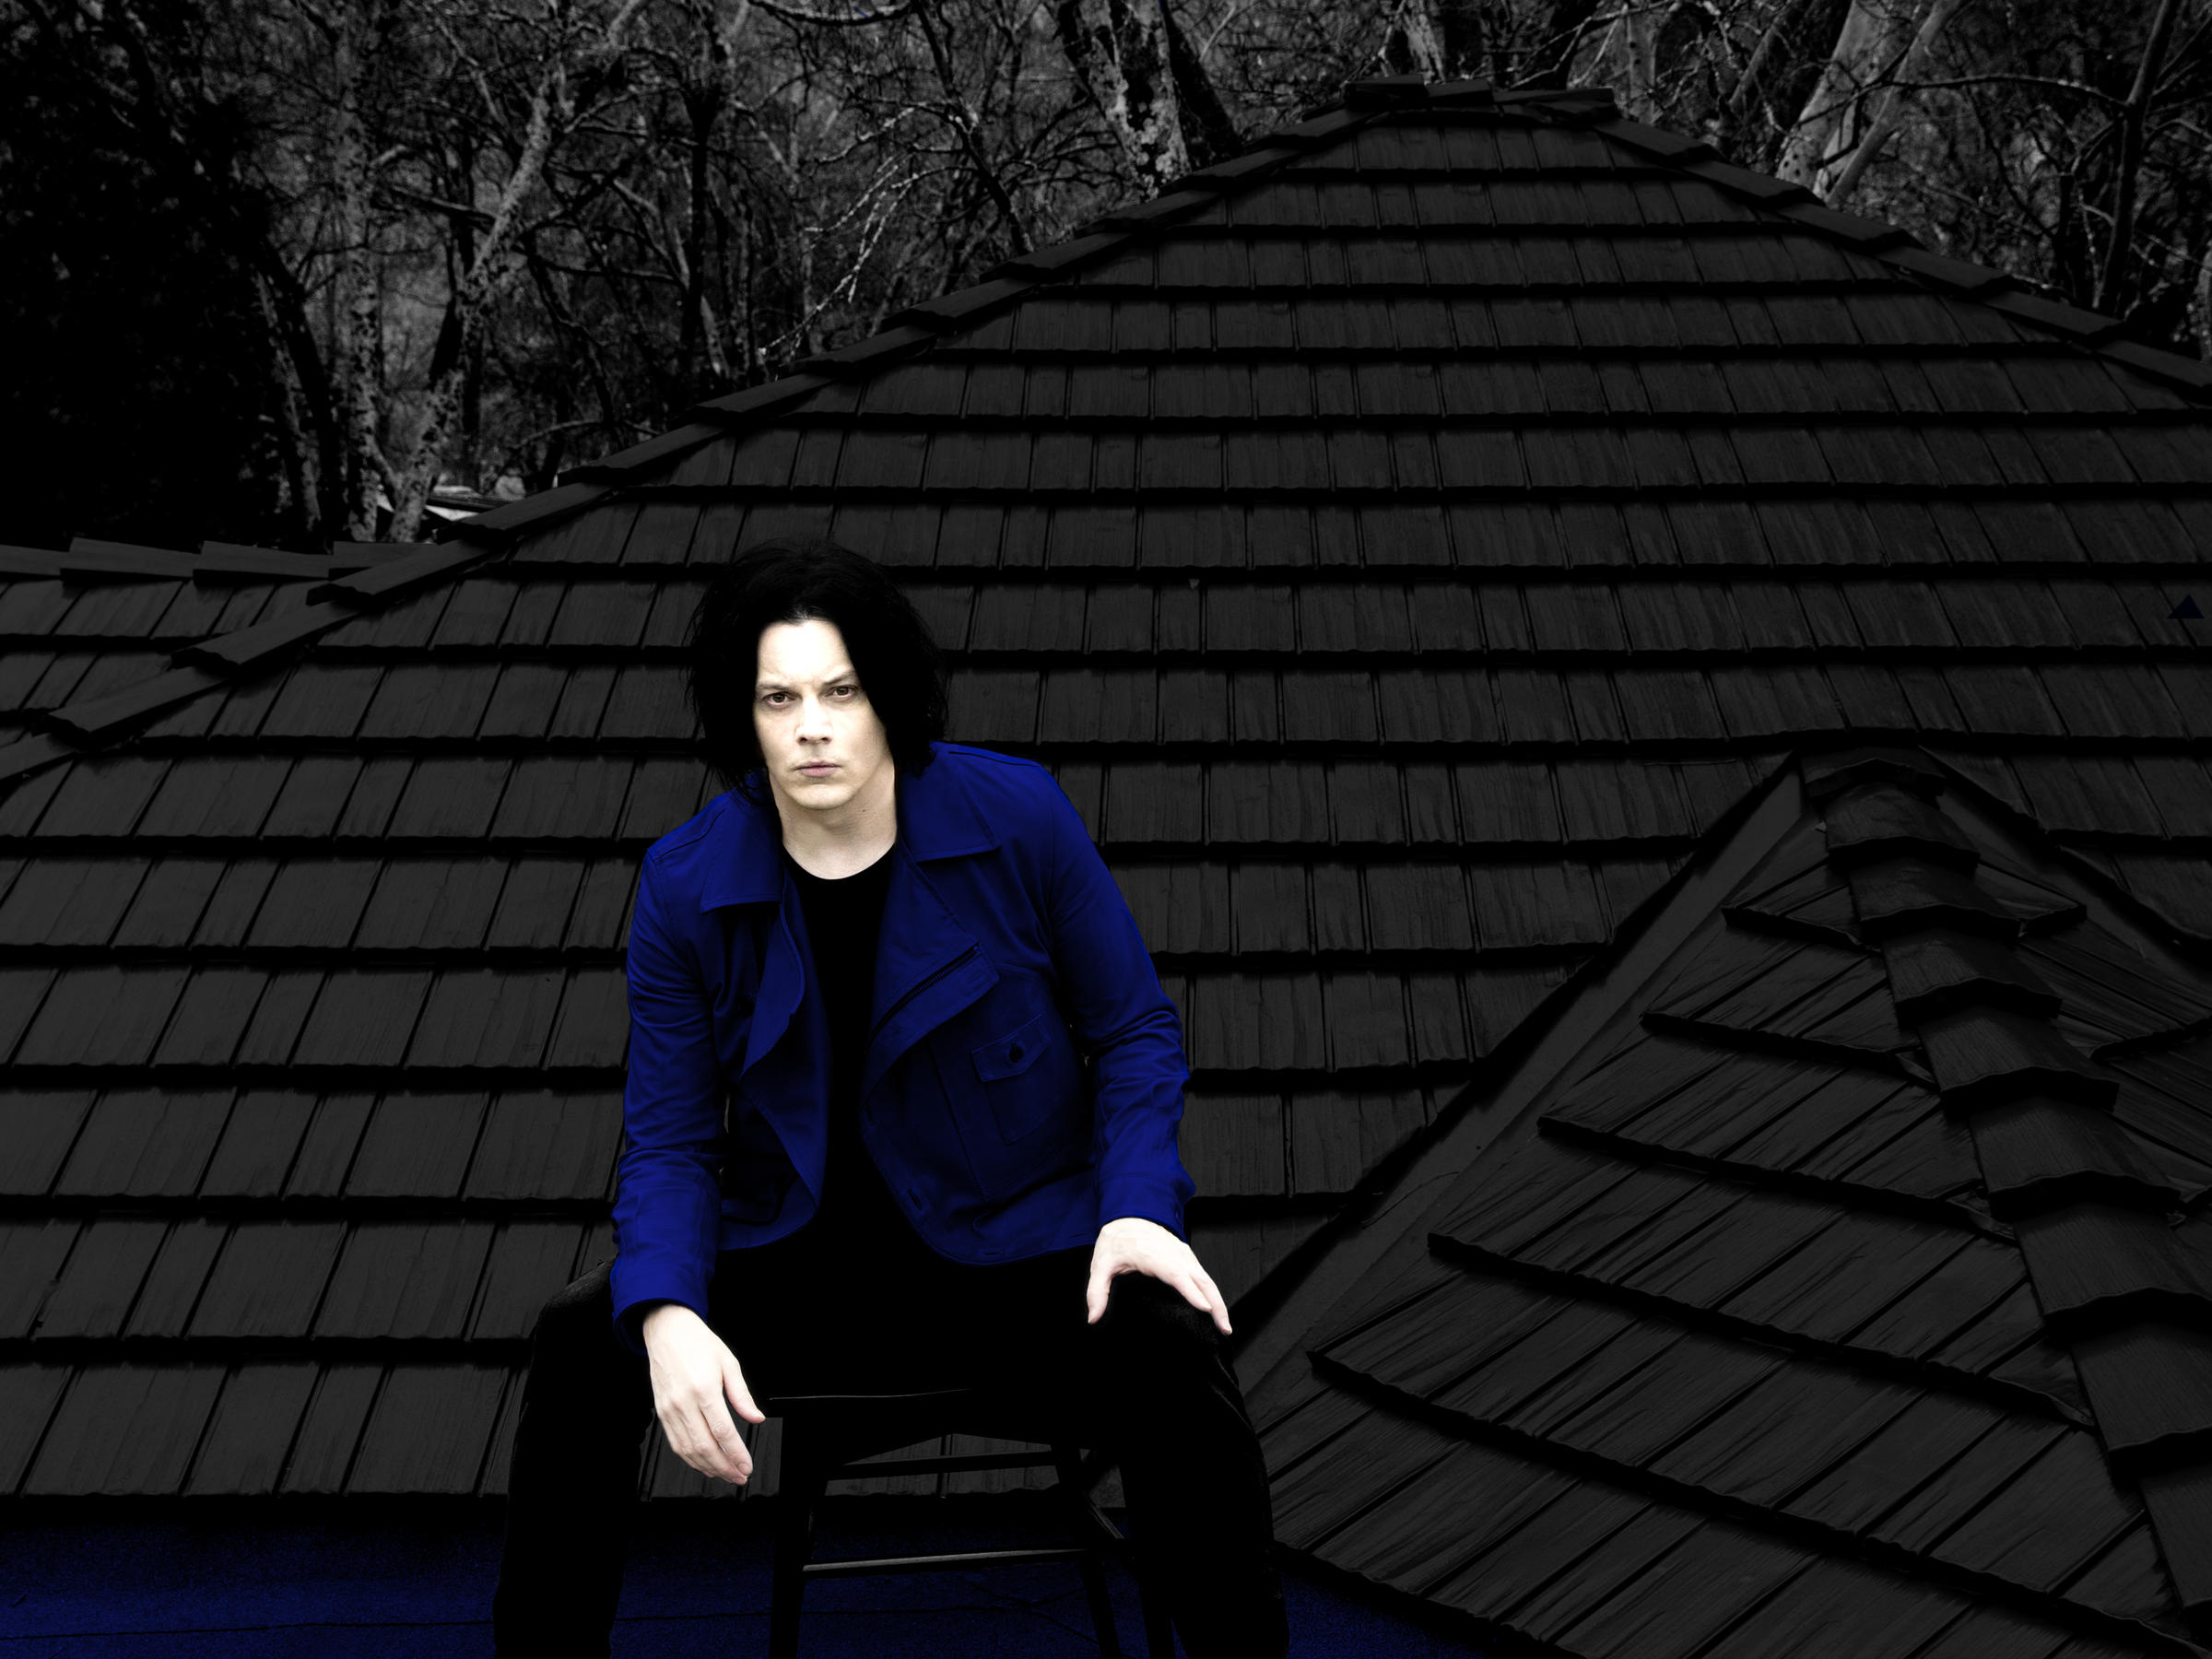 Jack White Announces New Album 'Boarding House Reach', Drops Two New Songs